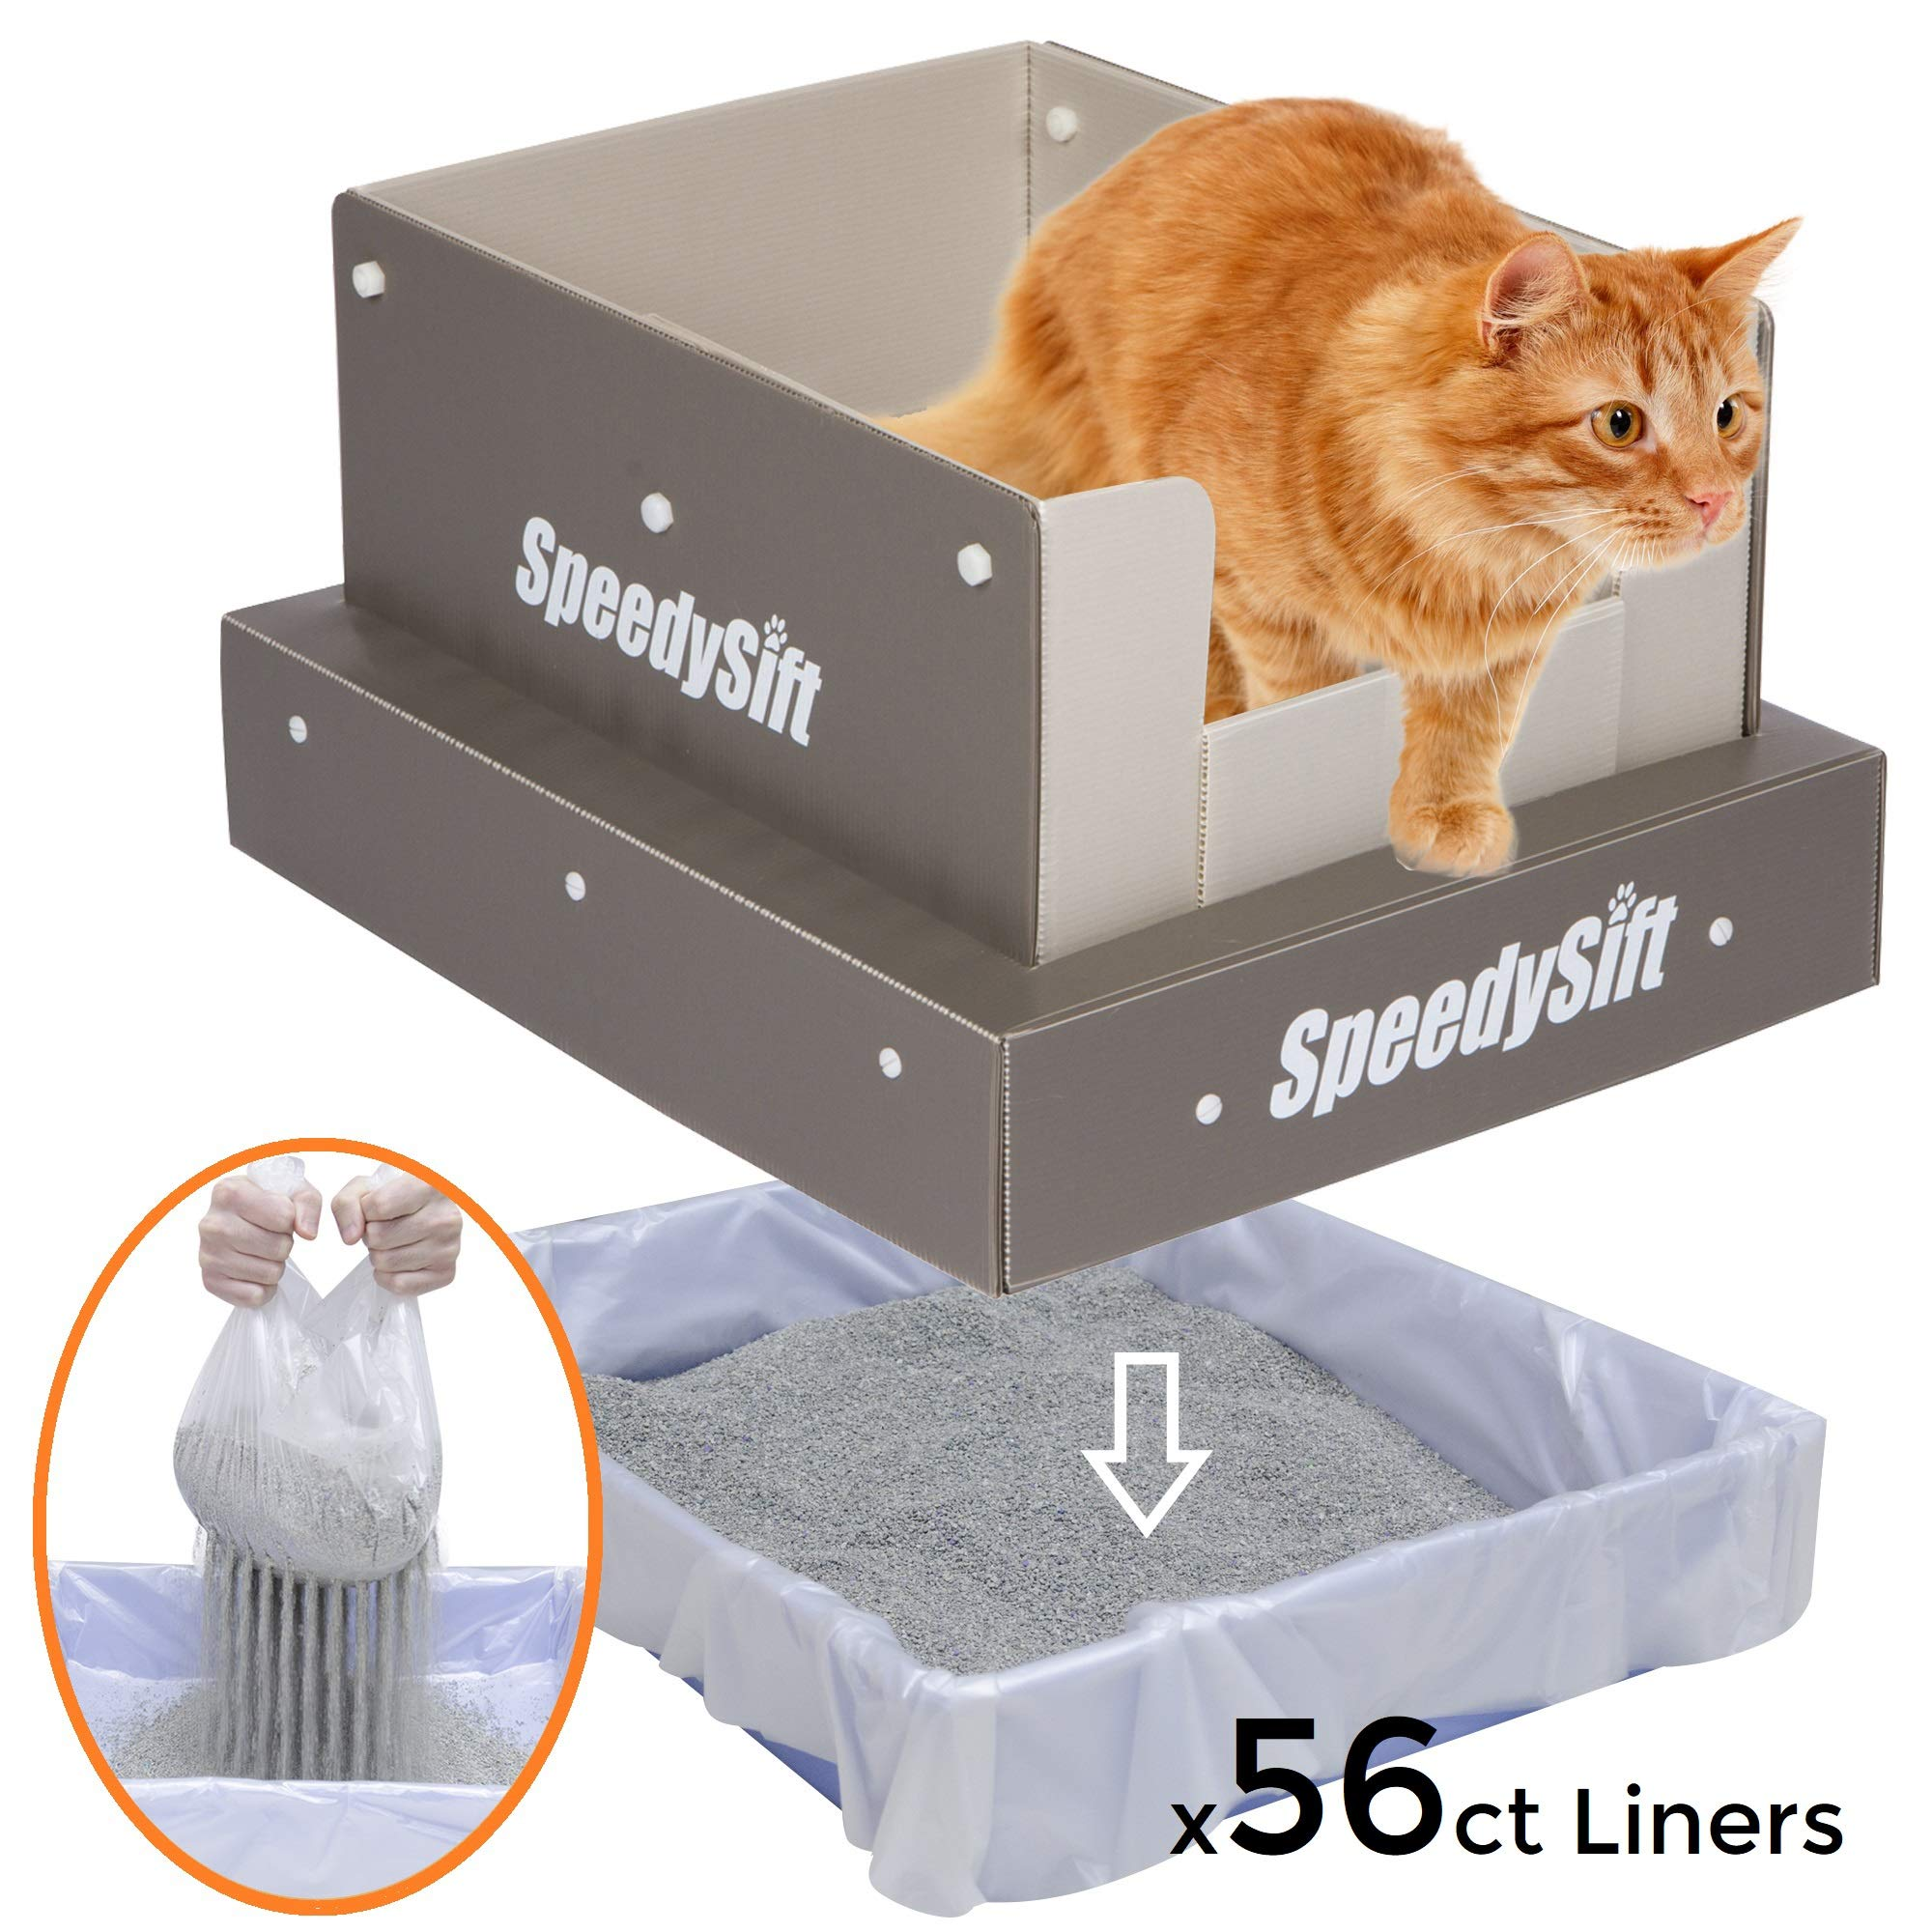 SpeedySift Mess-Free Cat Litter Box with Improved Sifting Liners, Cats' Favorite Box-Like (100% Plastic) High Sides, Large by SpeedySift